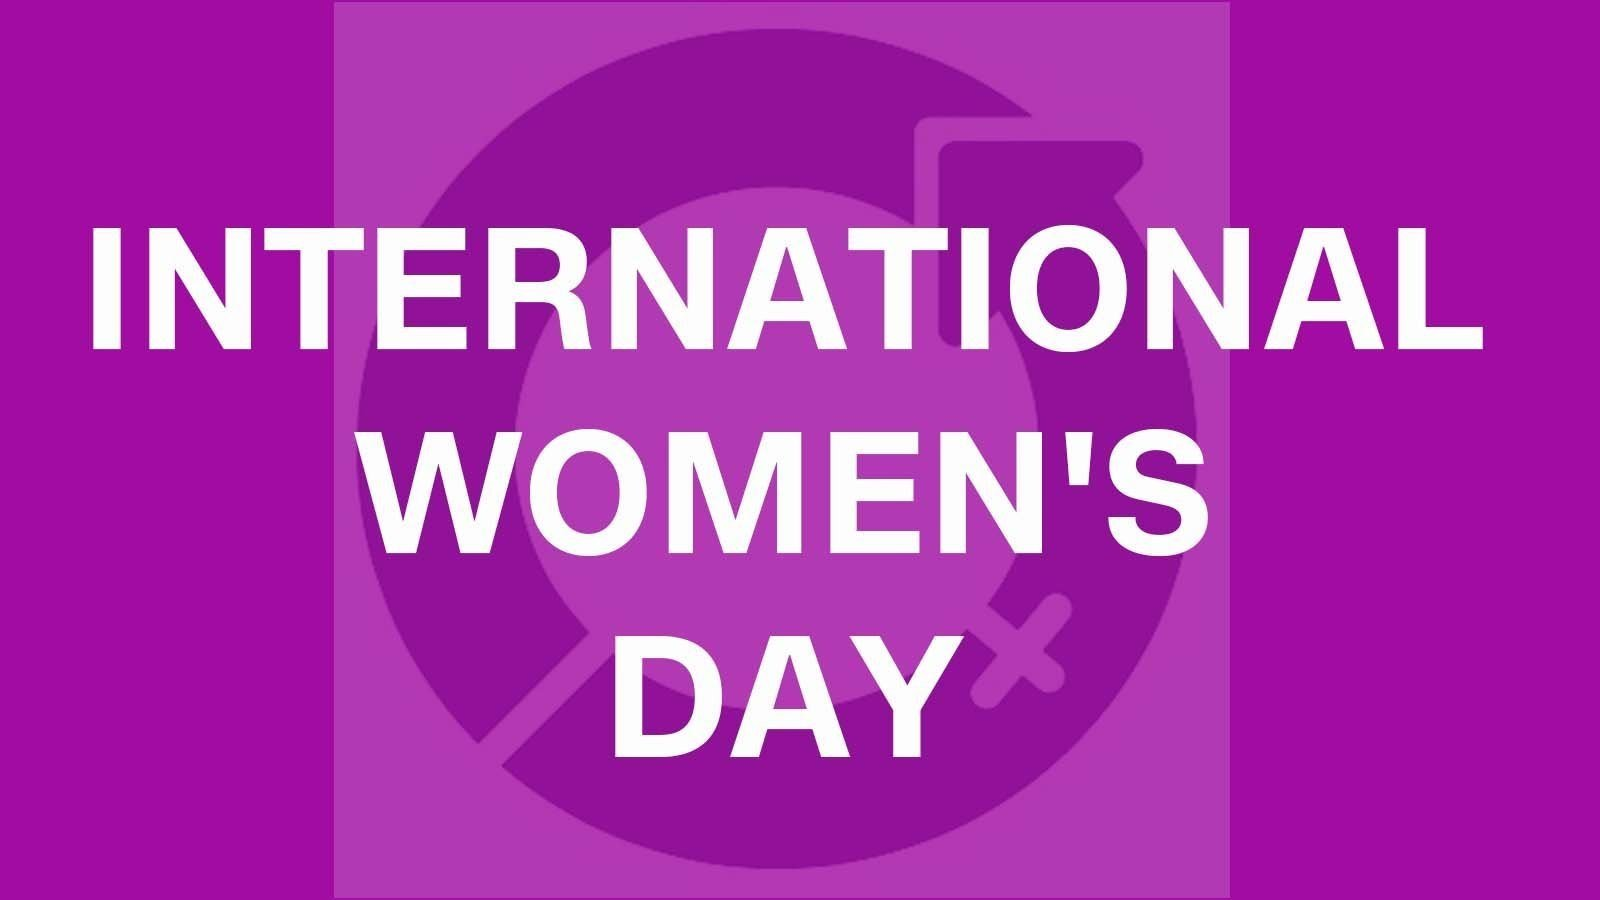 International Women's Day is on March 8, 2018.  Credit: International Women's Day/Facebook